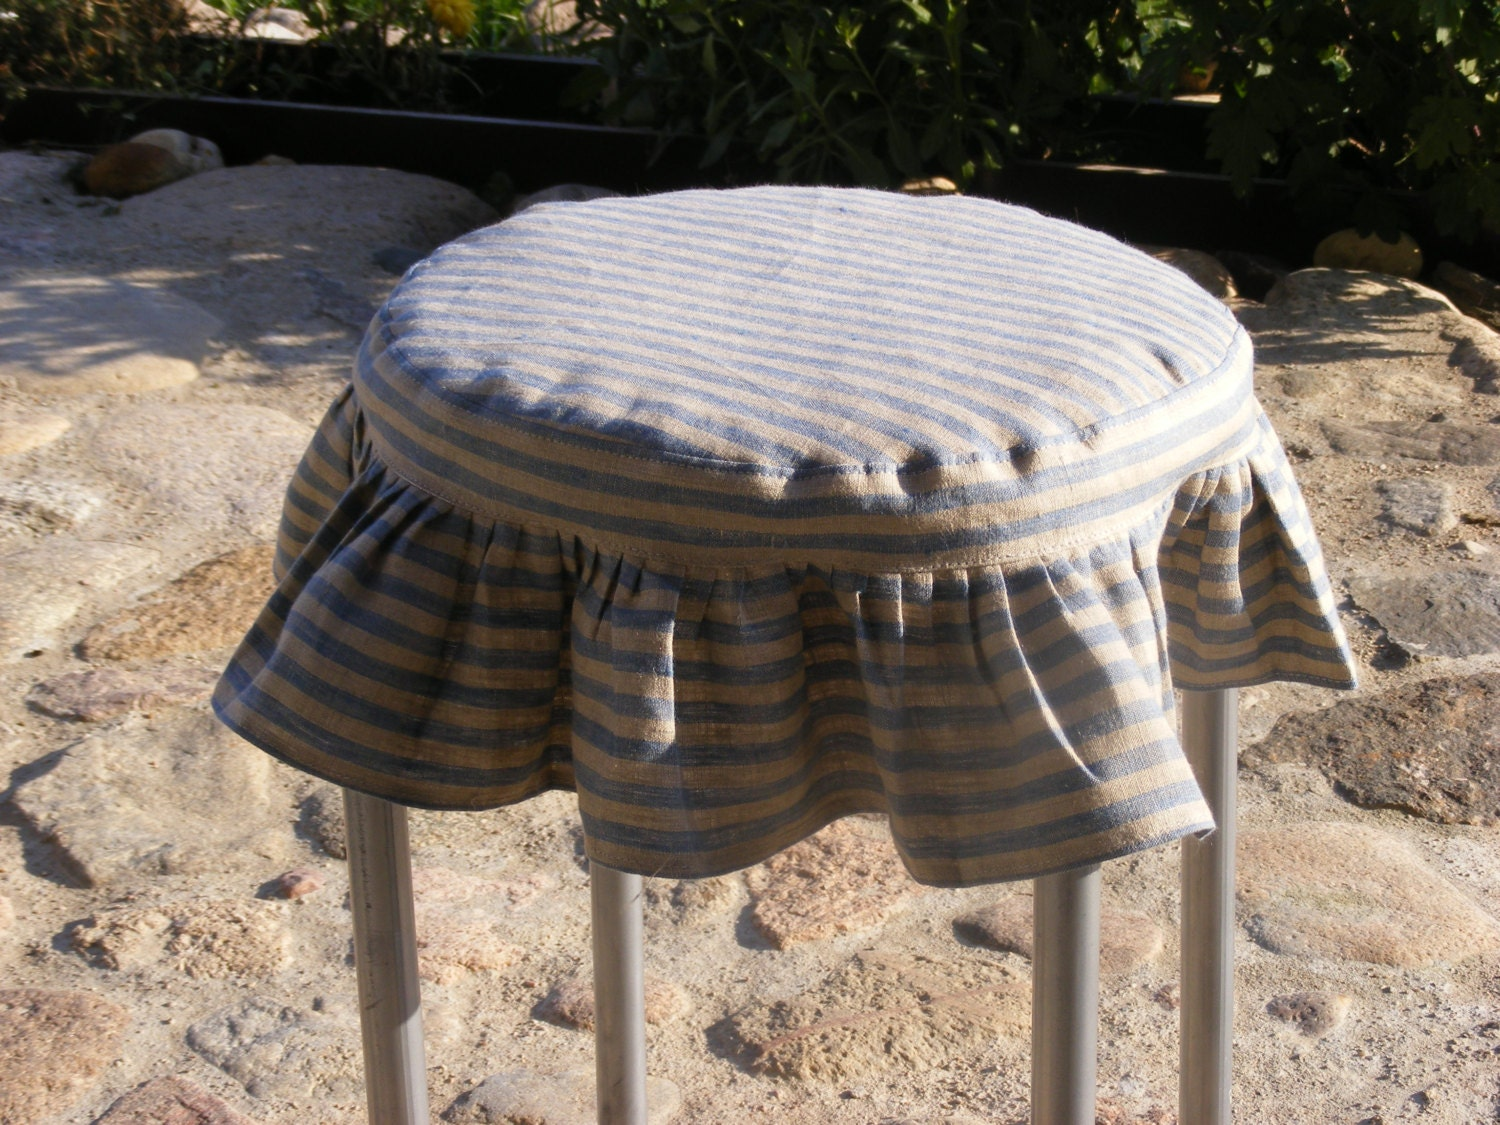 Round Ruffled Stool Seat Covers Linen Chair Cover Bar : ilfullxfull1064912970h21h from www.etsy.com size 1500 x 1125 jpeg 465kB